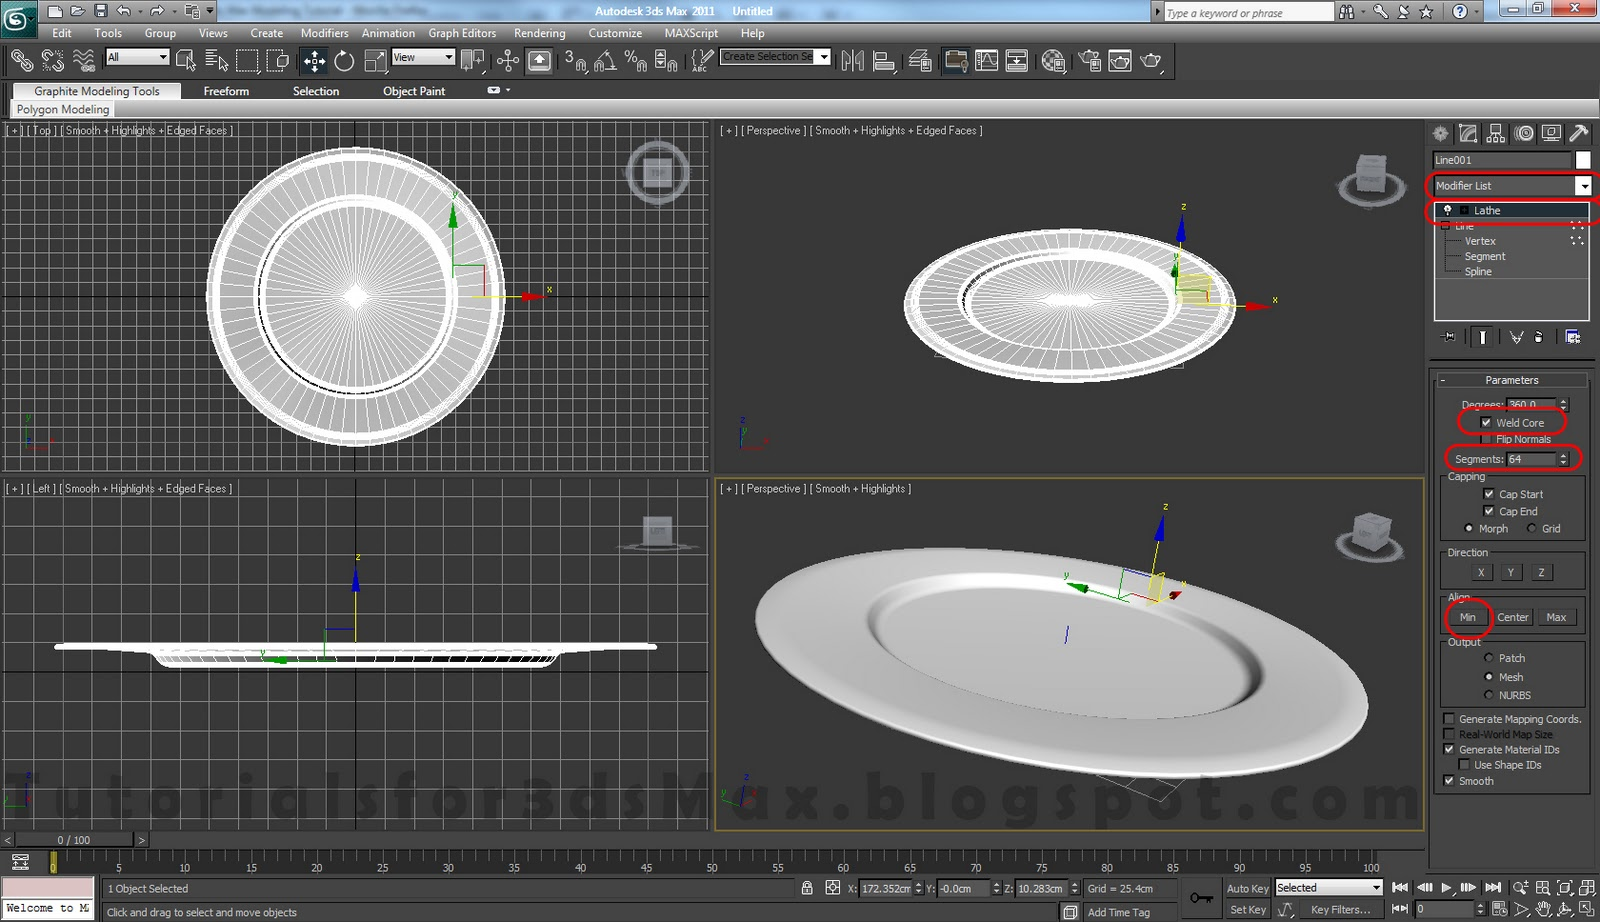 Plate 3ds max modeling tutorial tutorials for 3ds max Simple 3d modeling online